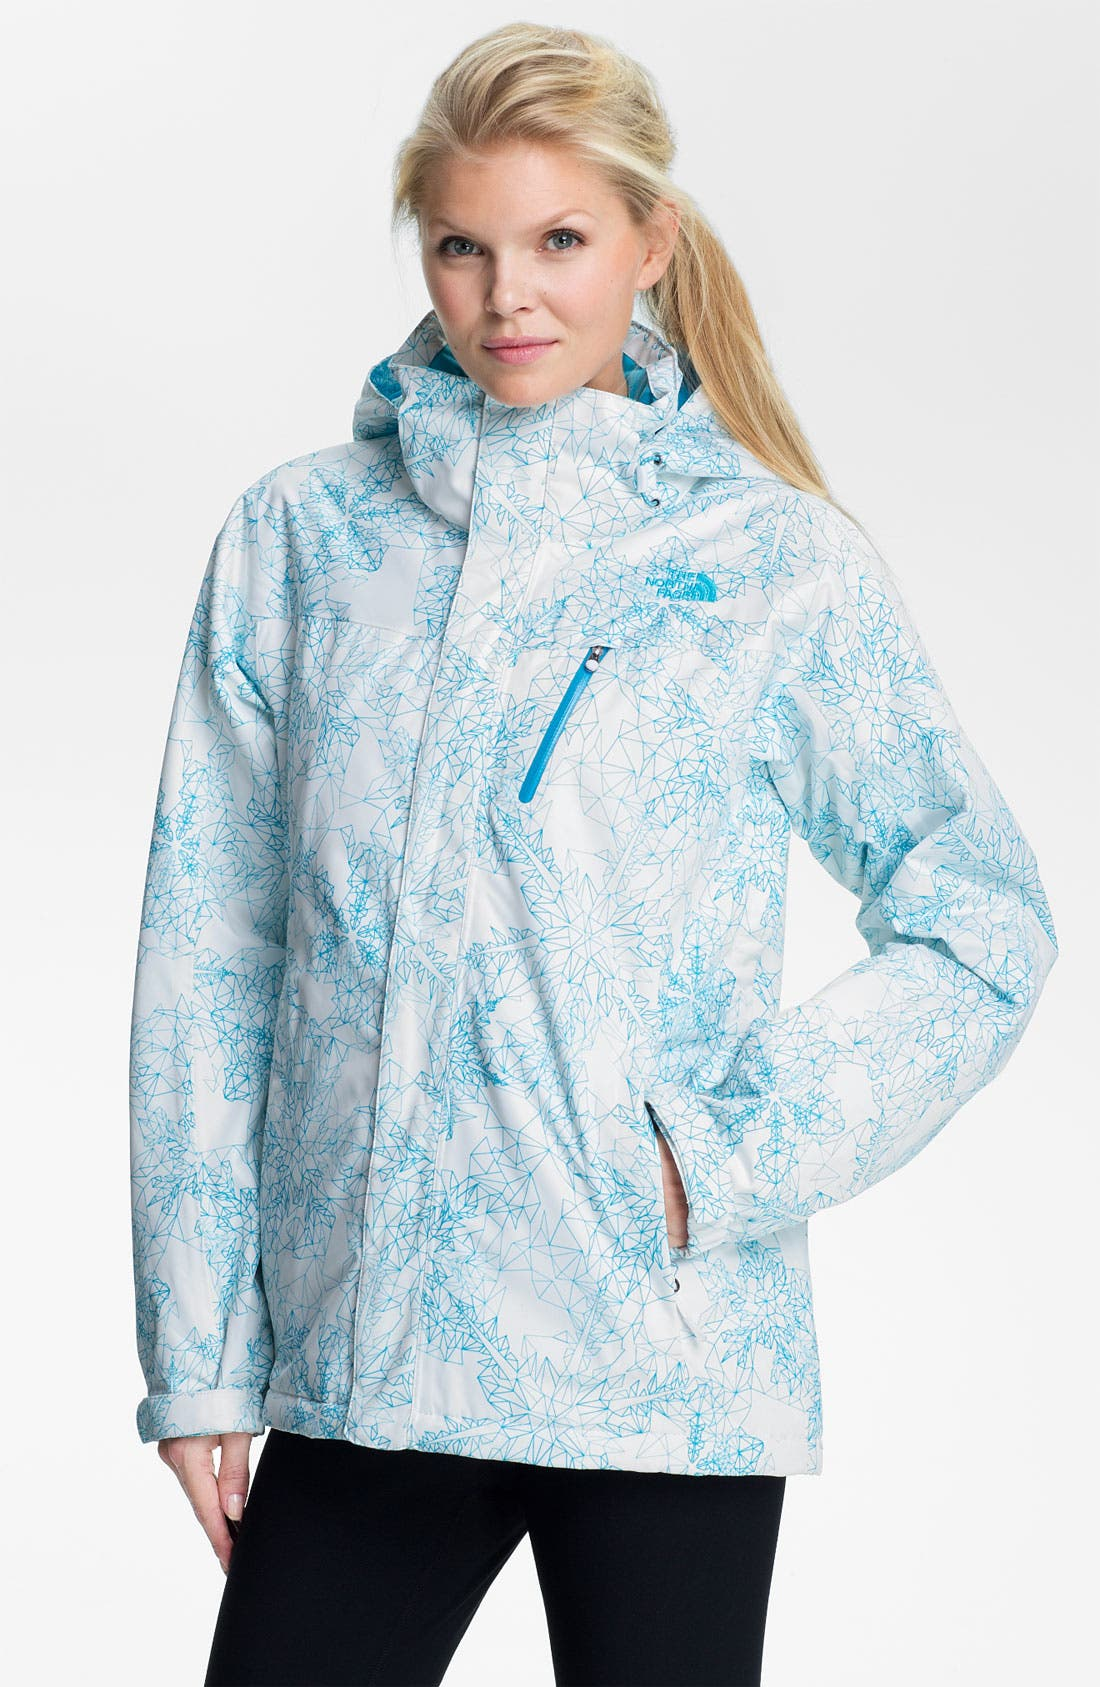 Alternate Image 1 Selected - The North Face 'Snow Cougar' Print Jacket